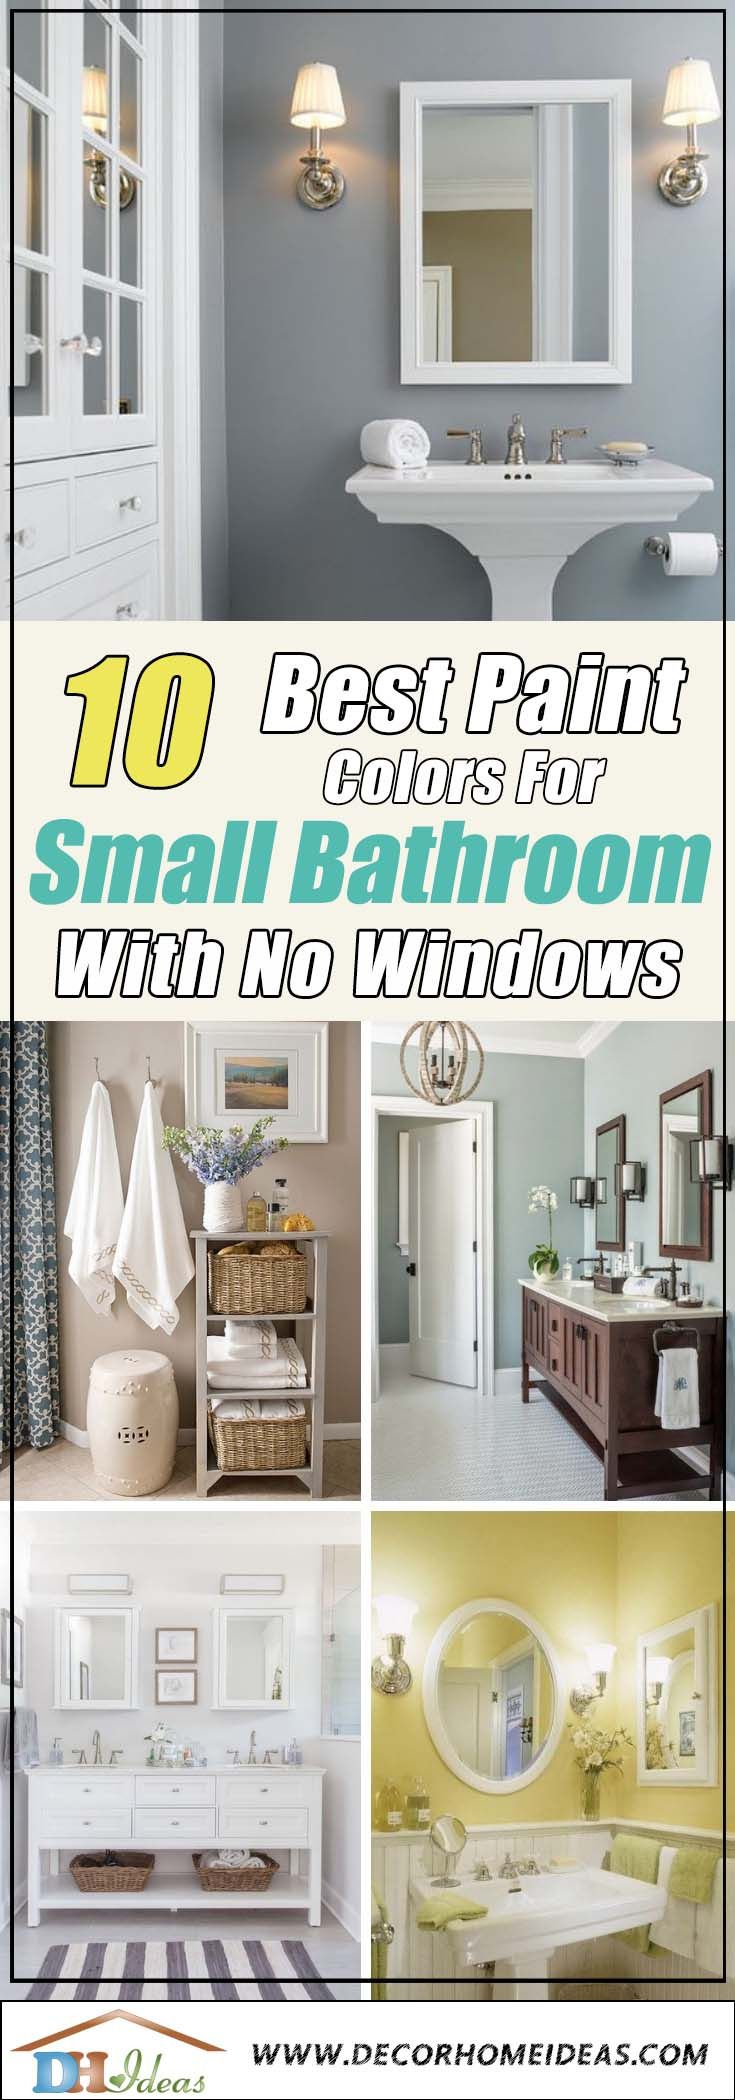 Decorating A Small Bathroom With No Window 2021 Interior Modern Cabinet